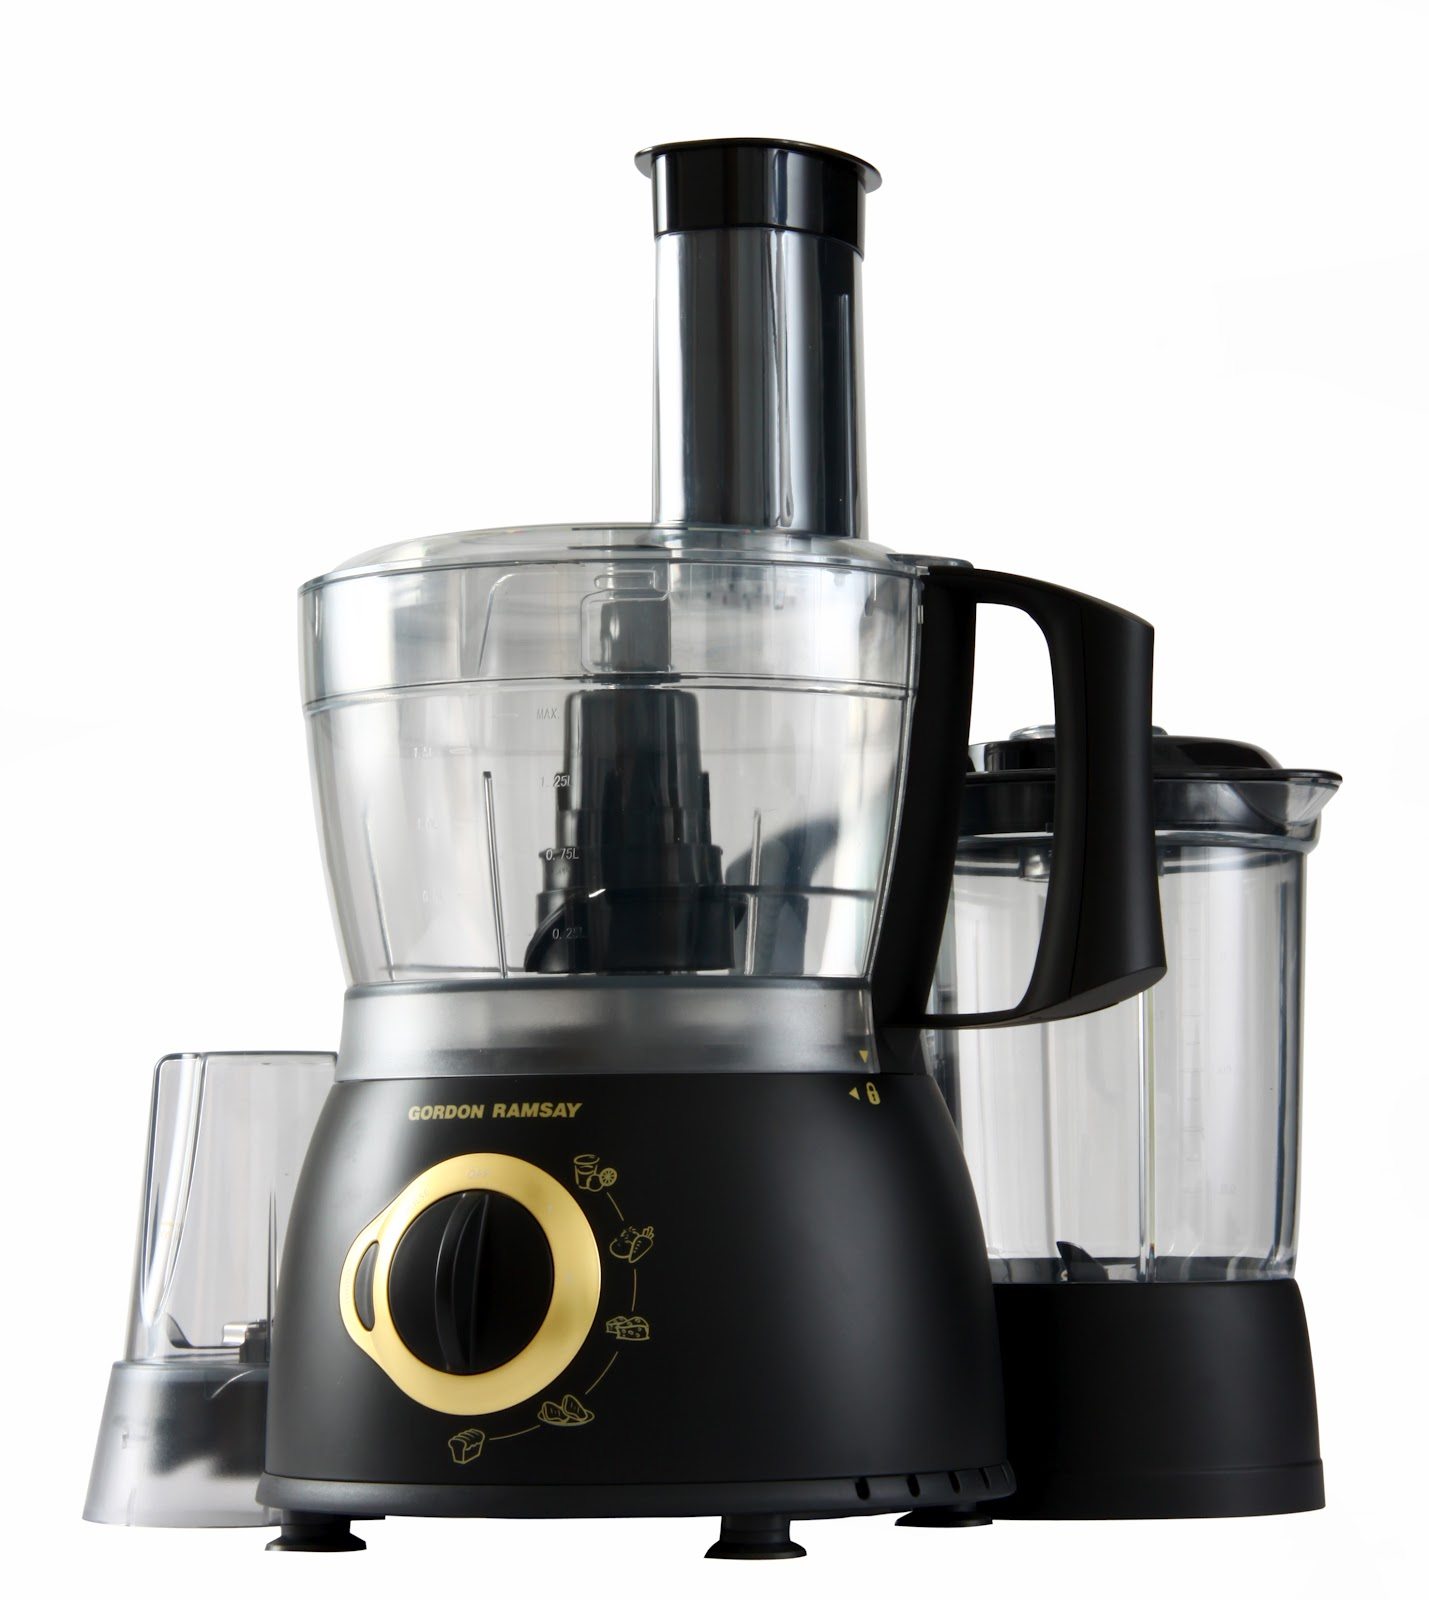 Gordon Ramsay Food Processor